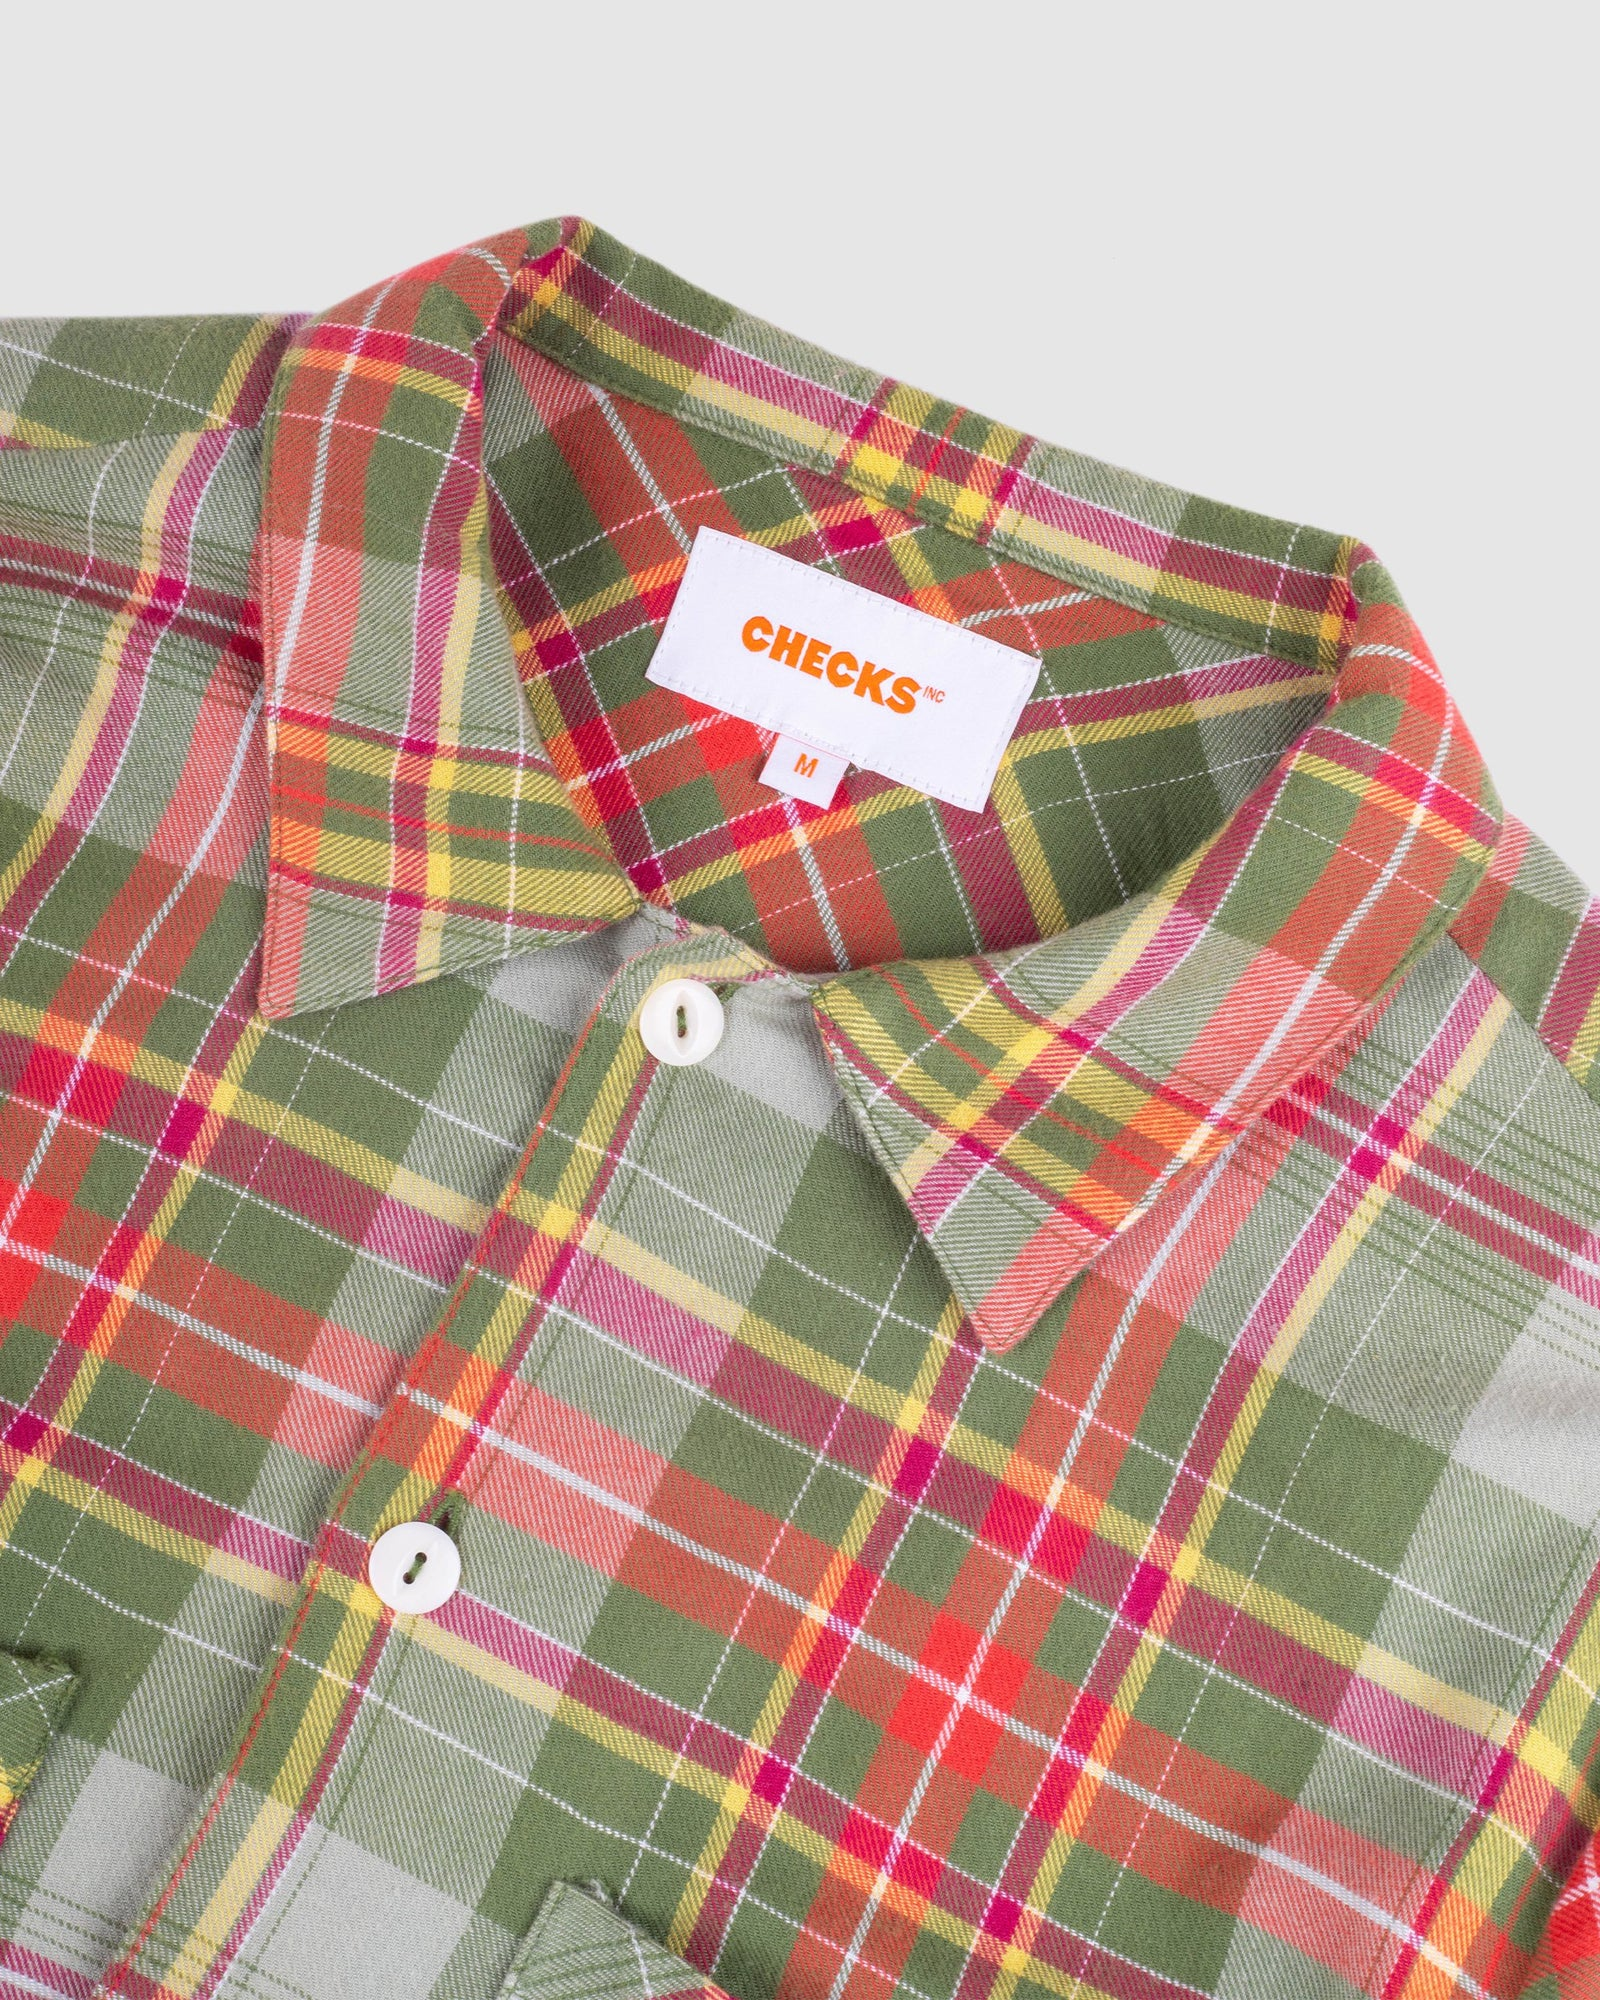 Load image into Gallery viewer, 50s Flannel Shirt Green/Mustard | CHECKS DOWNTOWN